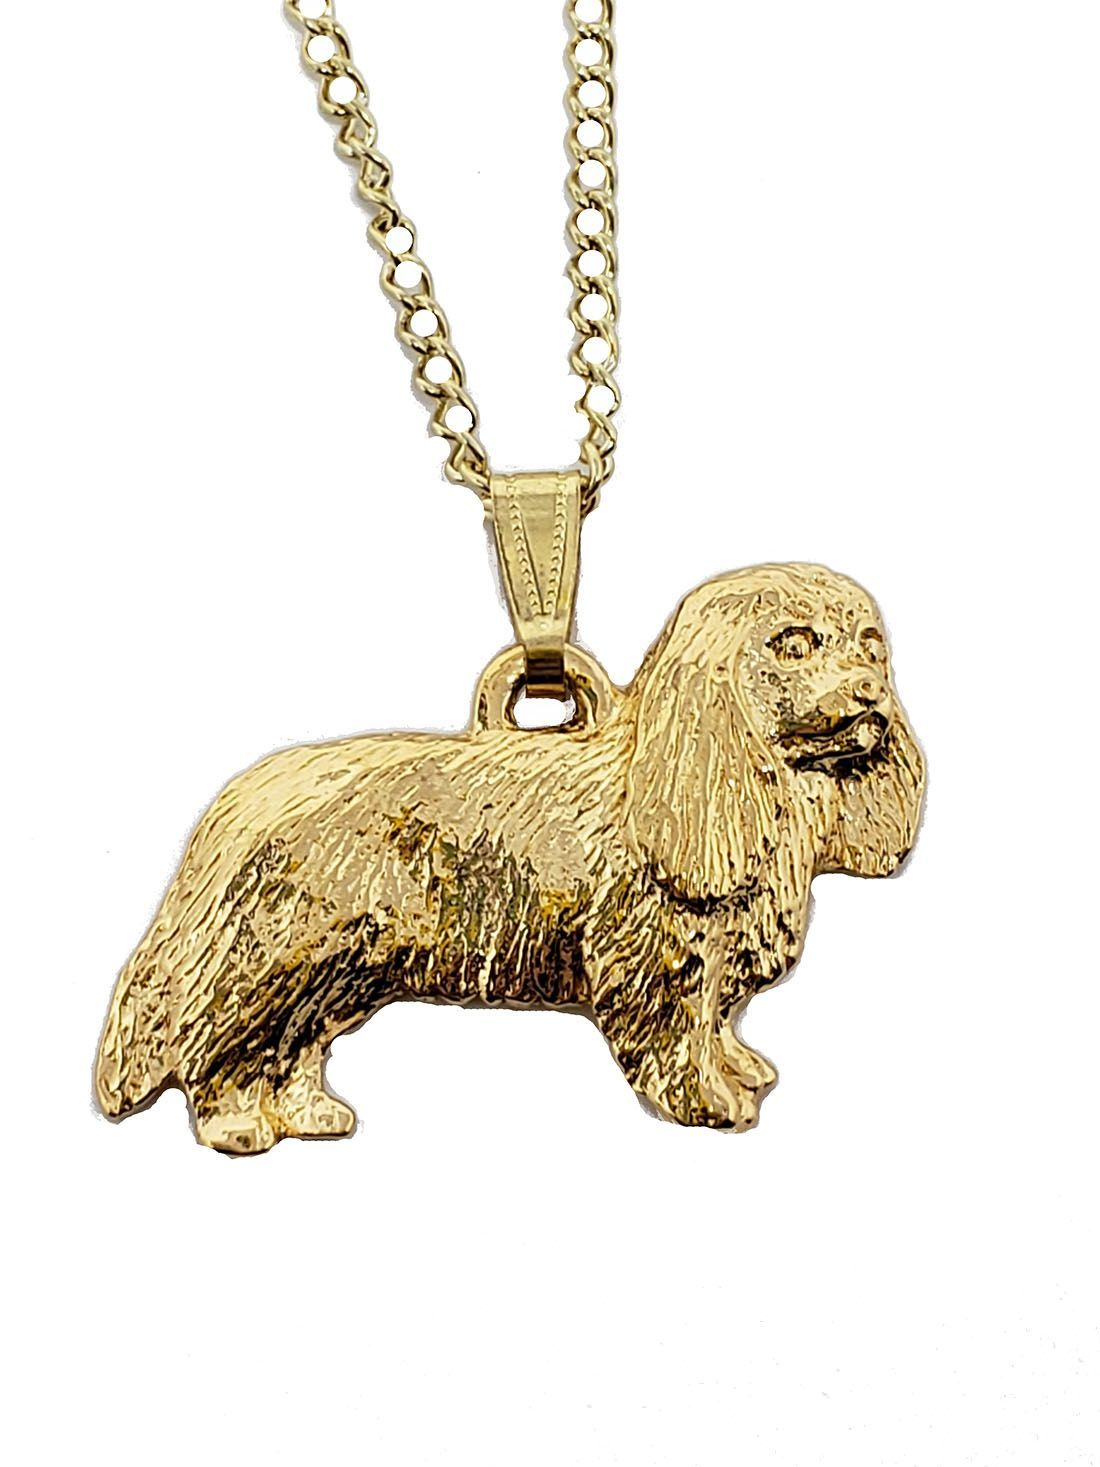 Cavalier King Charles 24K Gold Plated Pendant with Necklace